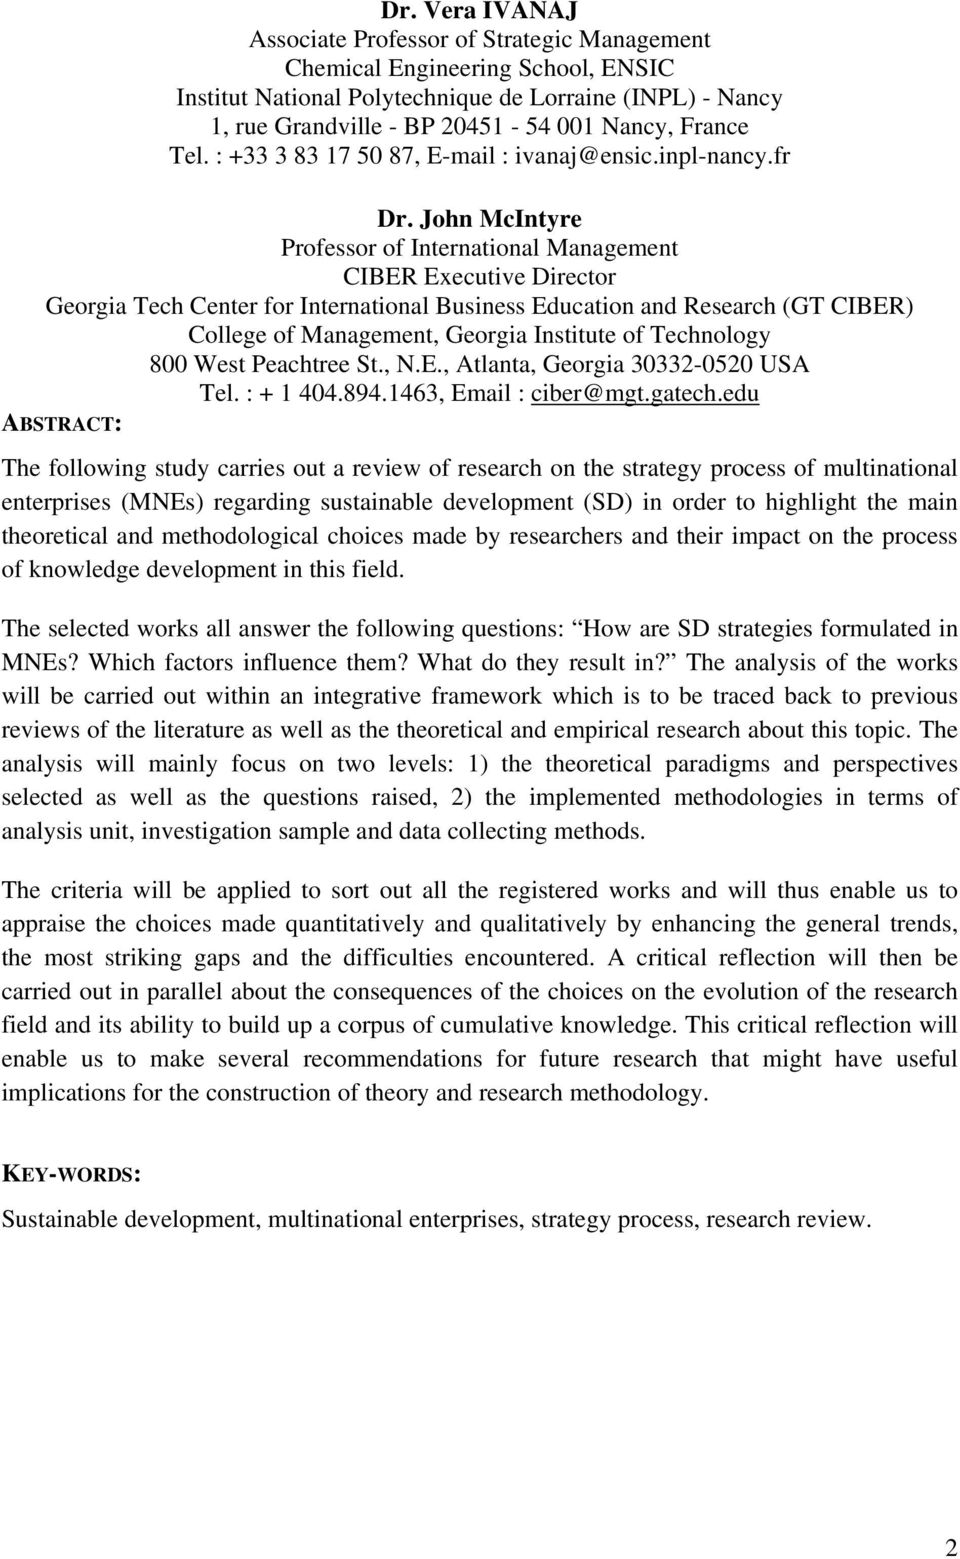 John McIntyre Professor of International Management CIBER Executive Director Georgia Tech Center for International Business Education and Research (GT CIBER) College of Management, Georgia Institute